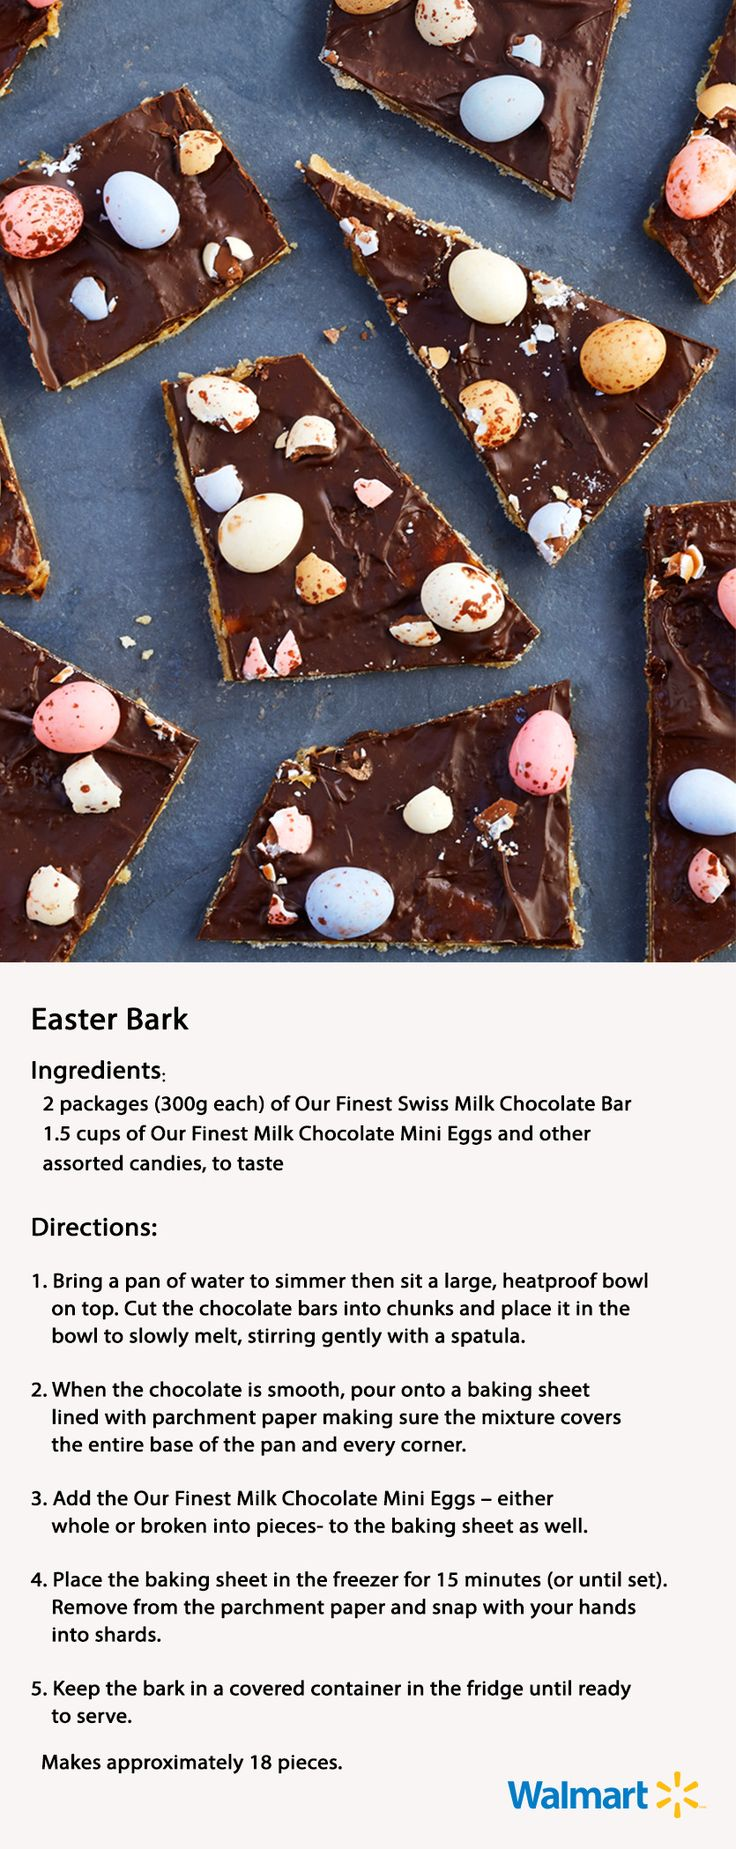 Milk chocolate bark that's perfect for the occasion: add Our Finest Mini Eggs for a festive fix! #Easter #entertaining #dessert #chocolatedesserts